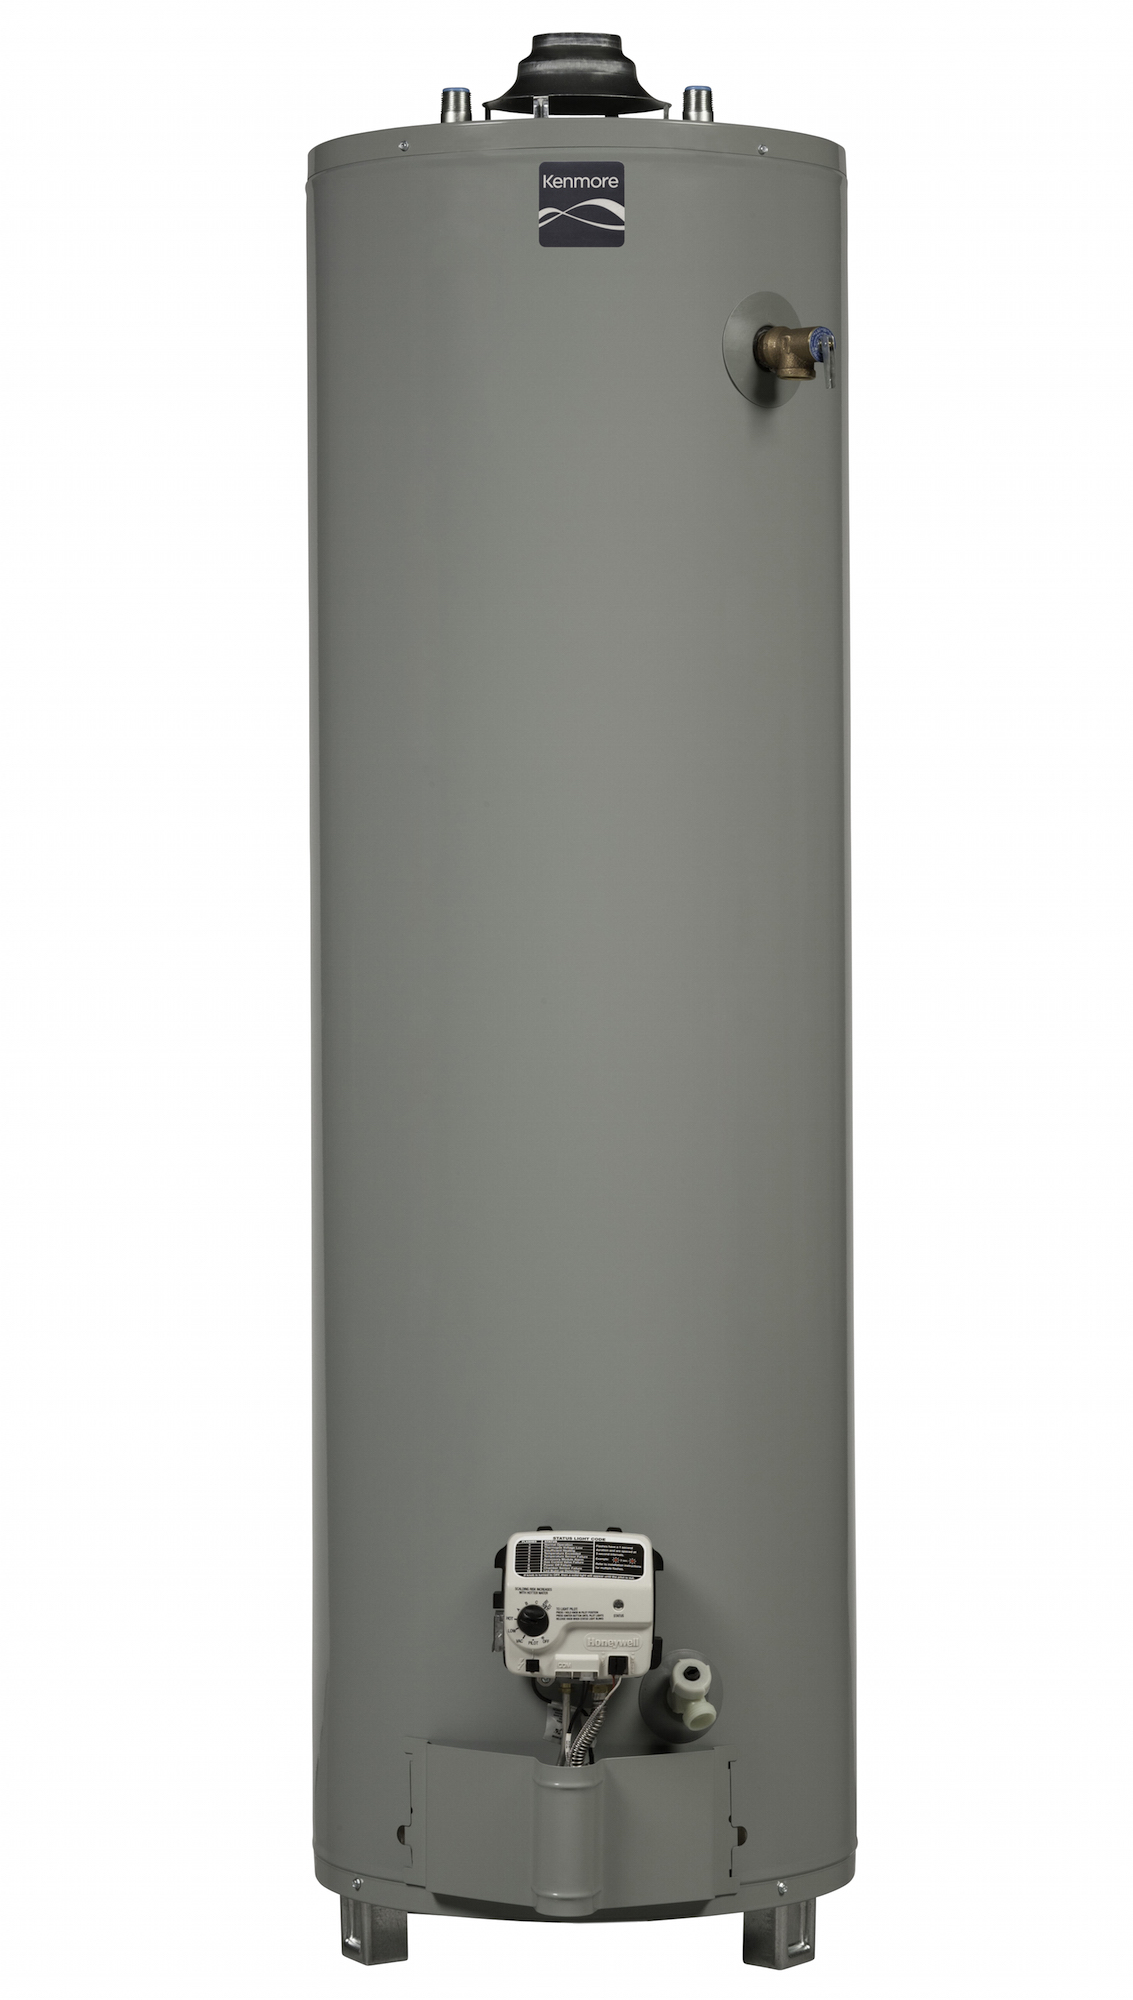 Kenmore 55640 40 gal. 6-Year Tall Natural Gas Ultra Low NOx Water Heater (Select California Markets)